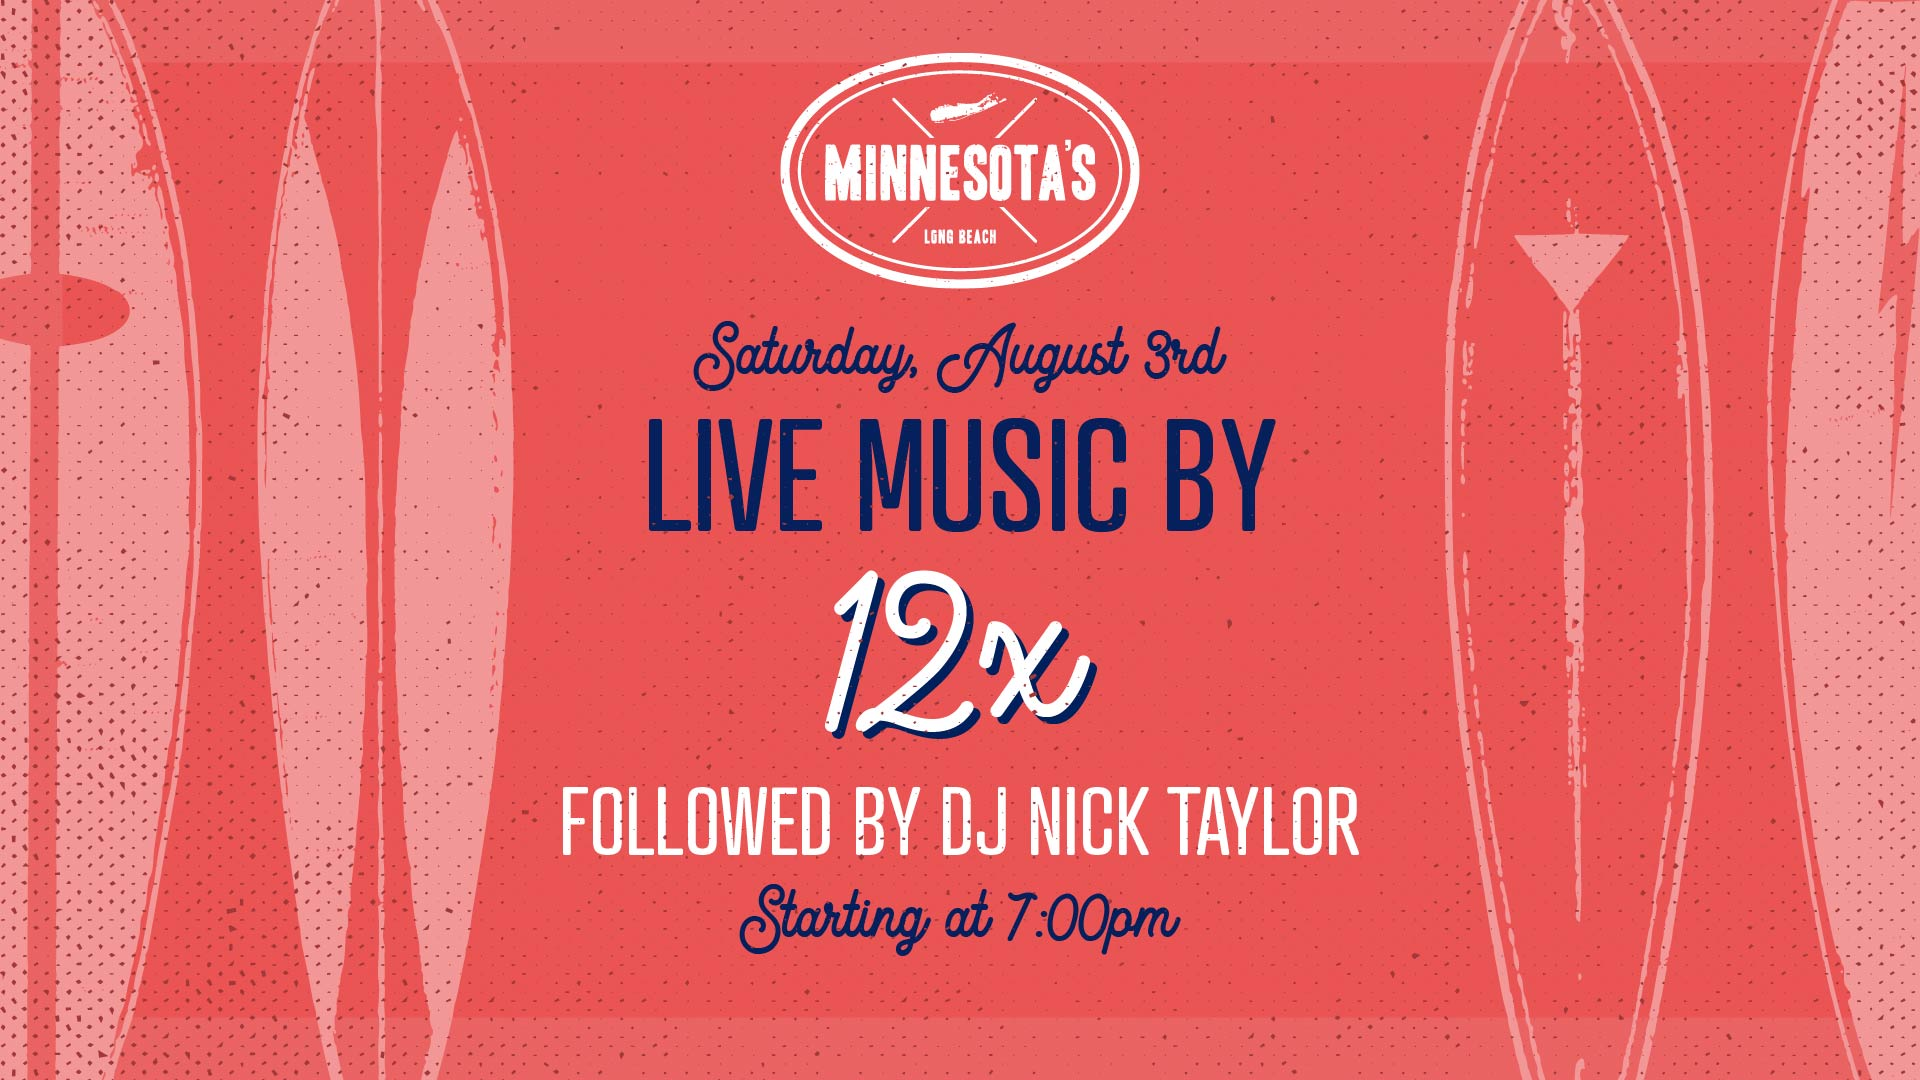 flyer for live music by 12x followed by dj nick taylor at minnesotas on august 3rd at 7pm